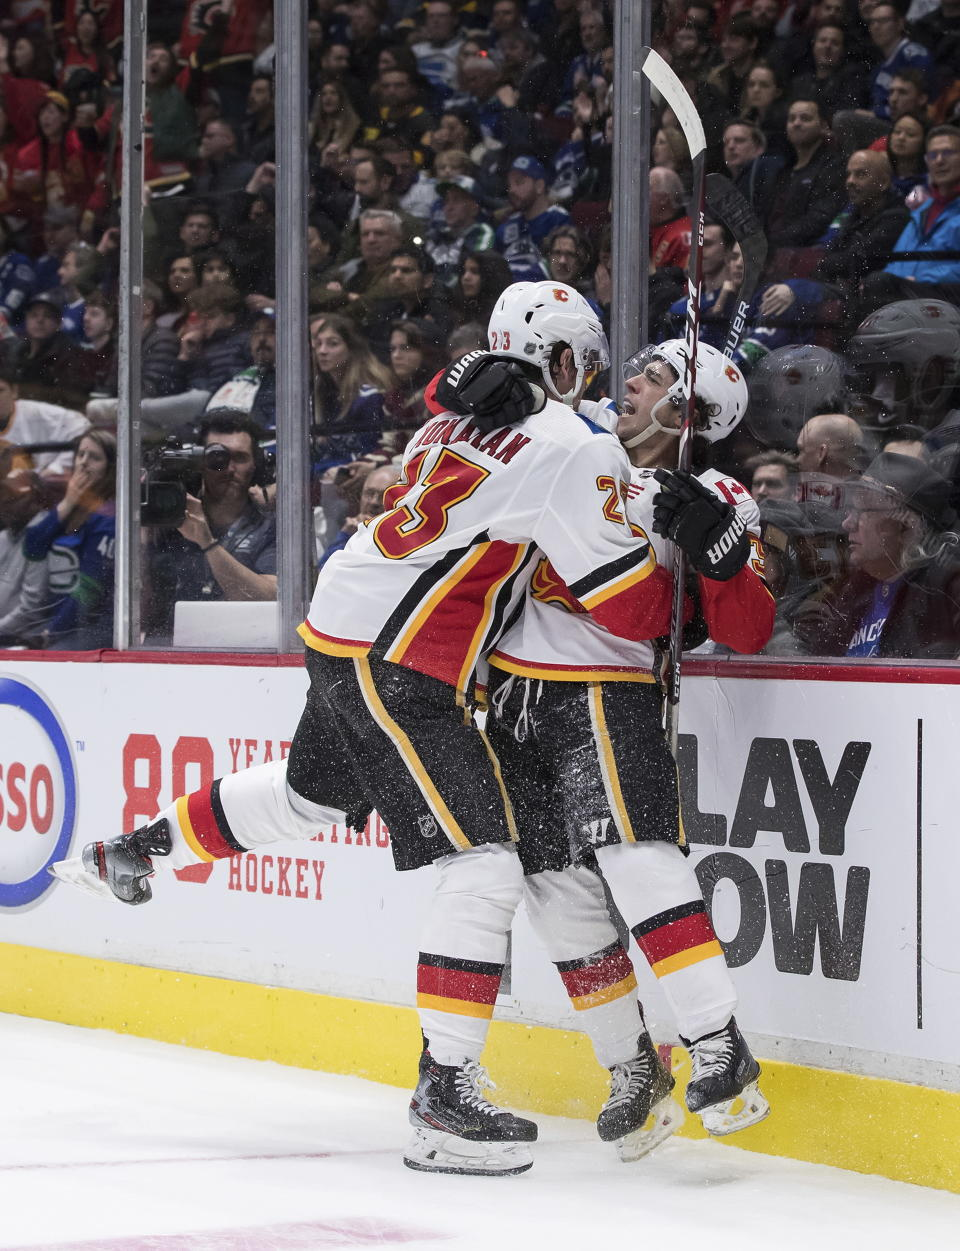 Calgary Flames' Johnny Gaudreau, right, and Sean Monahan celebrate Monahan's goal against the Vancouver Canucks during the third period of an NHL hockey game Saturday, Feb. 8, 2020, in Vancouver, British Columbia. (Darryl Dyck/The Canadian Press via AP)